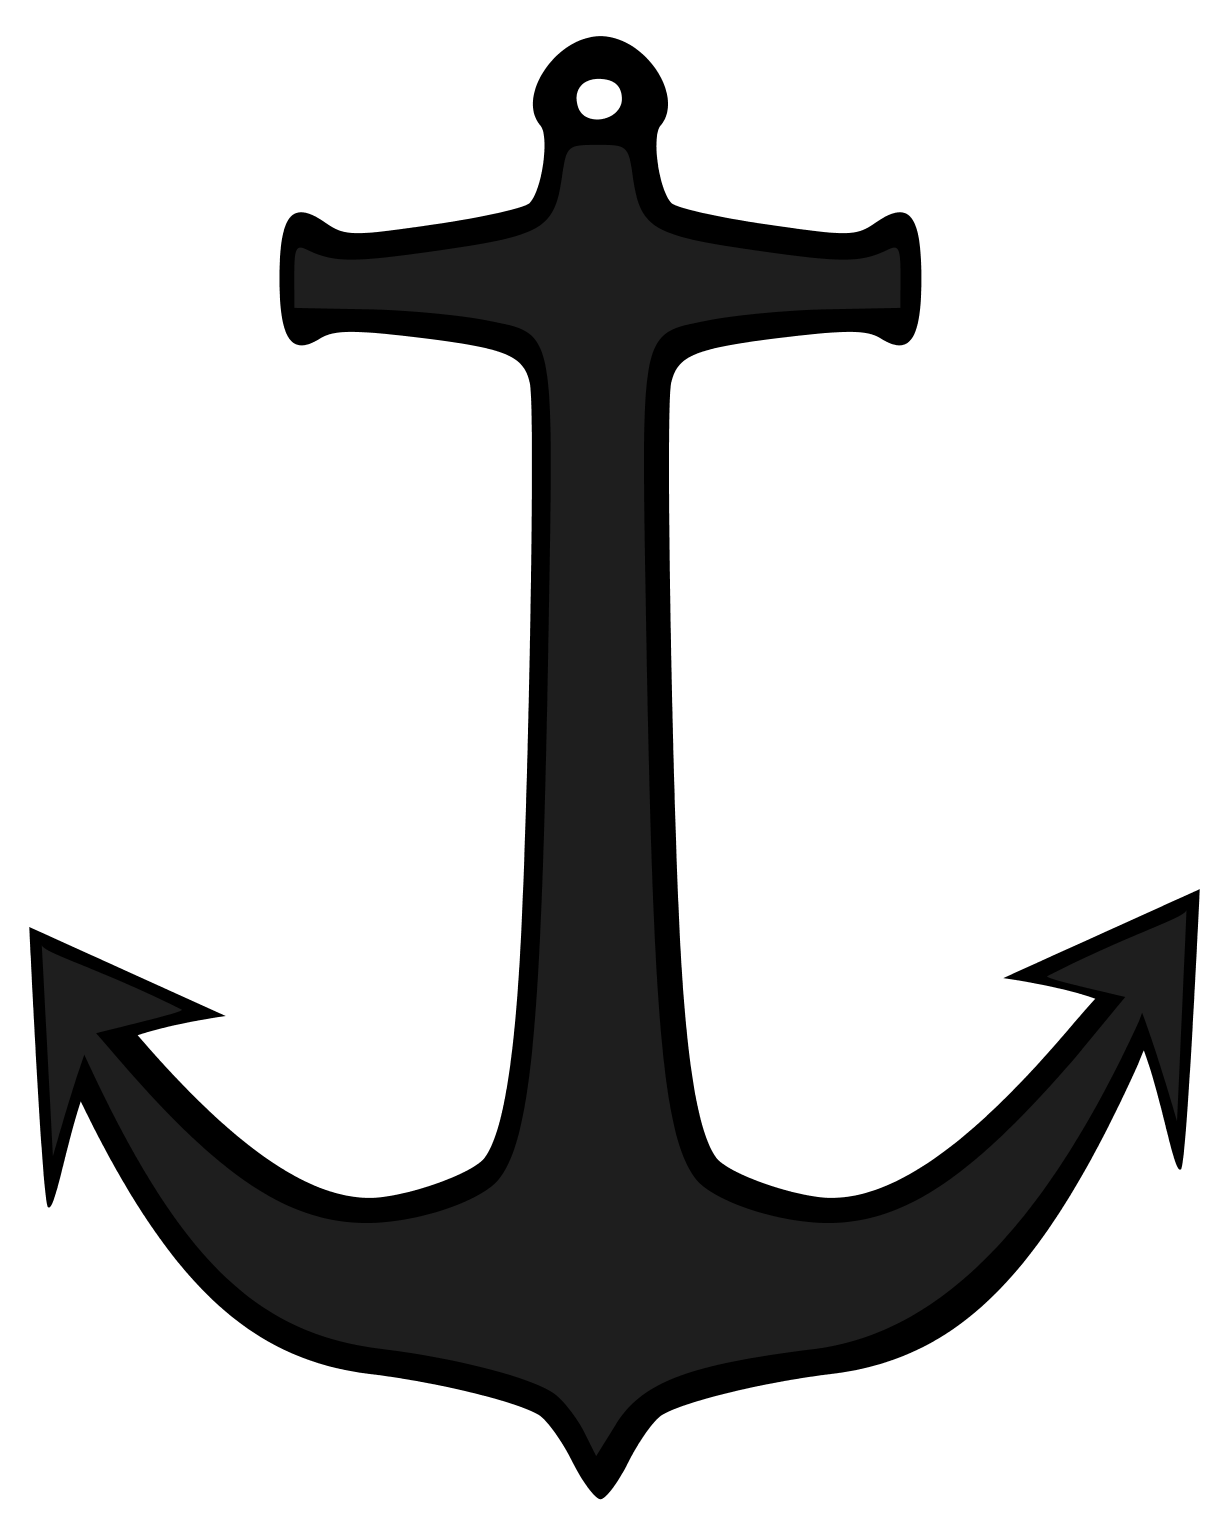 Anchor image - vector clip art online, royalty free & public domain